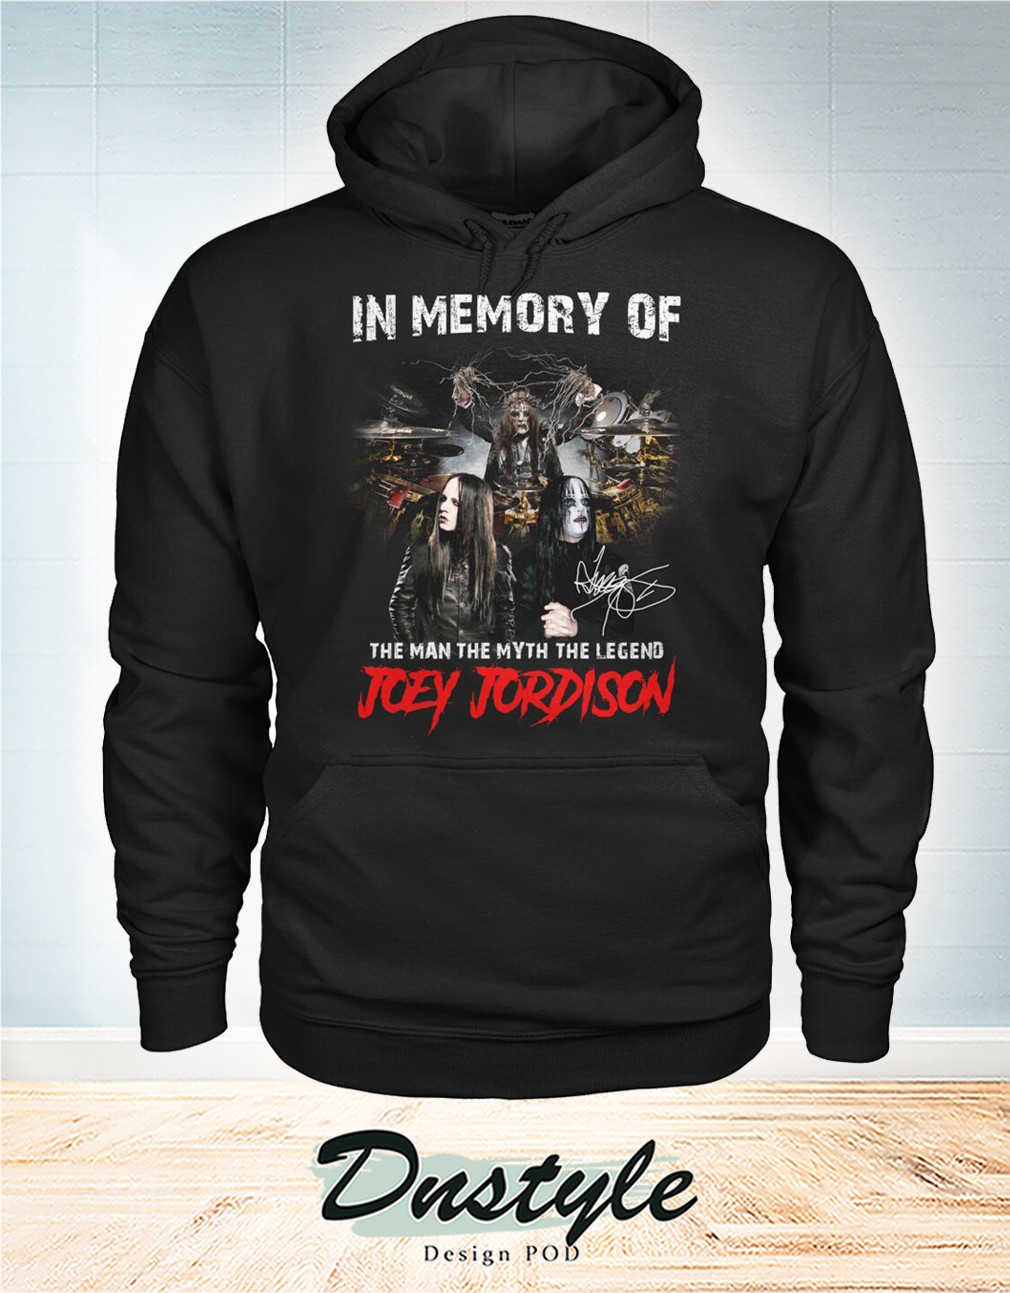 In memory of the man the myth the legend Joey Jordison hoodie